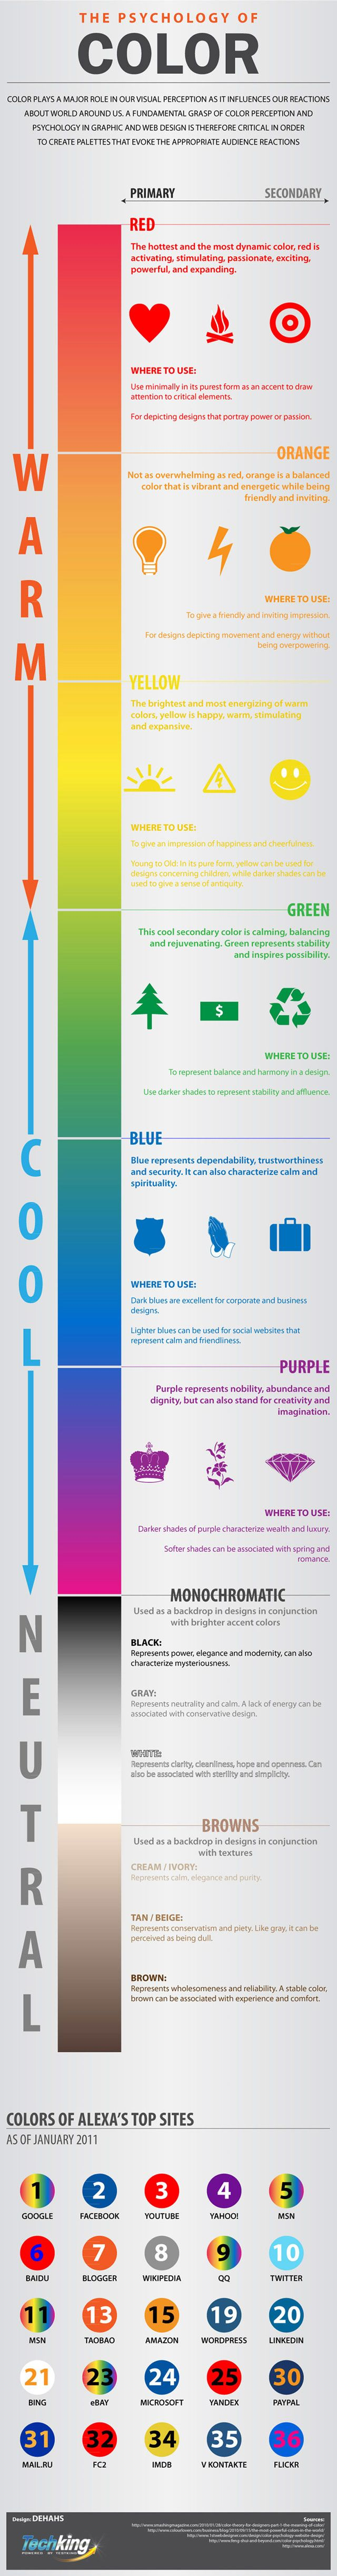 Phsychology of Color for web design